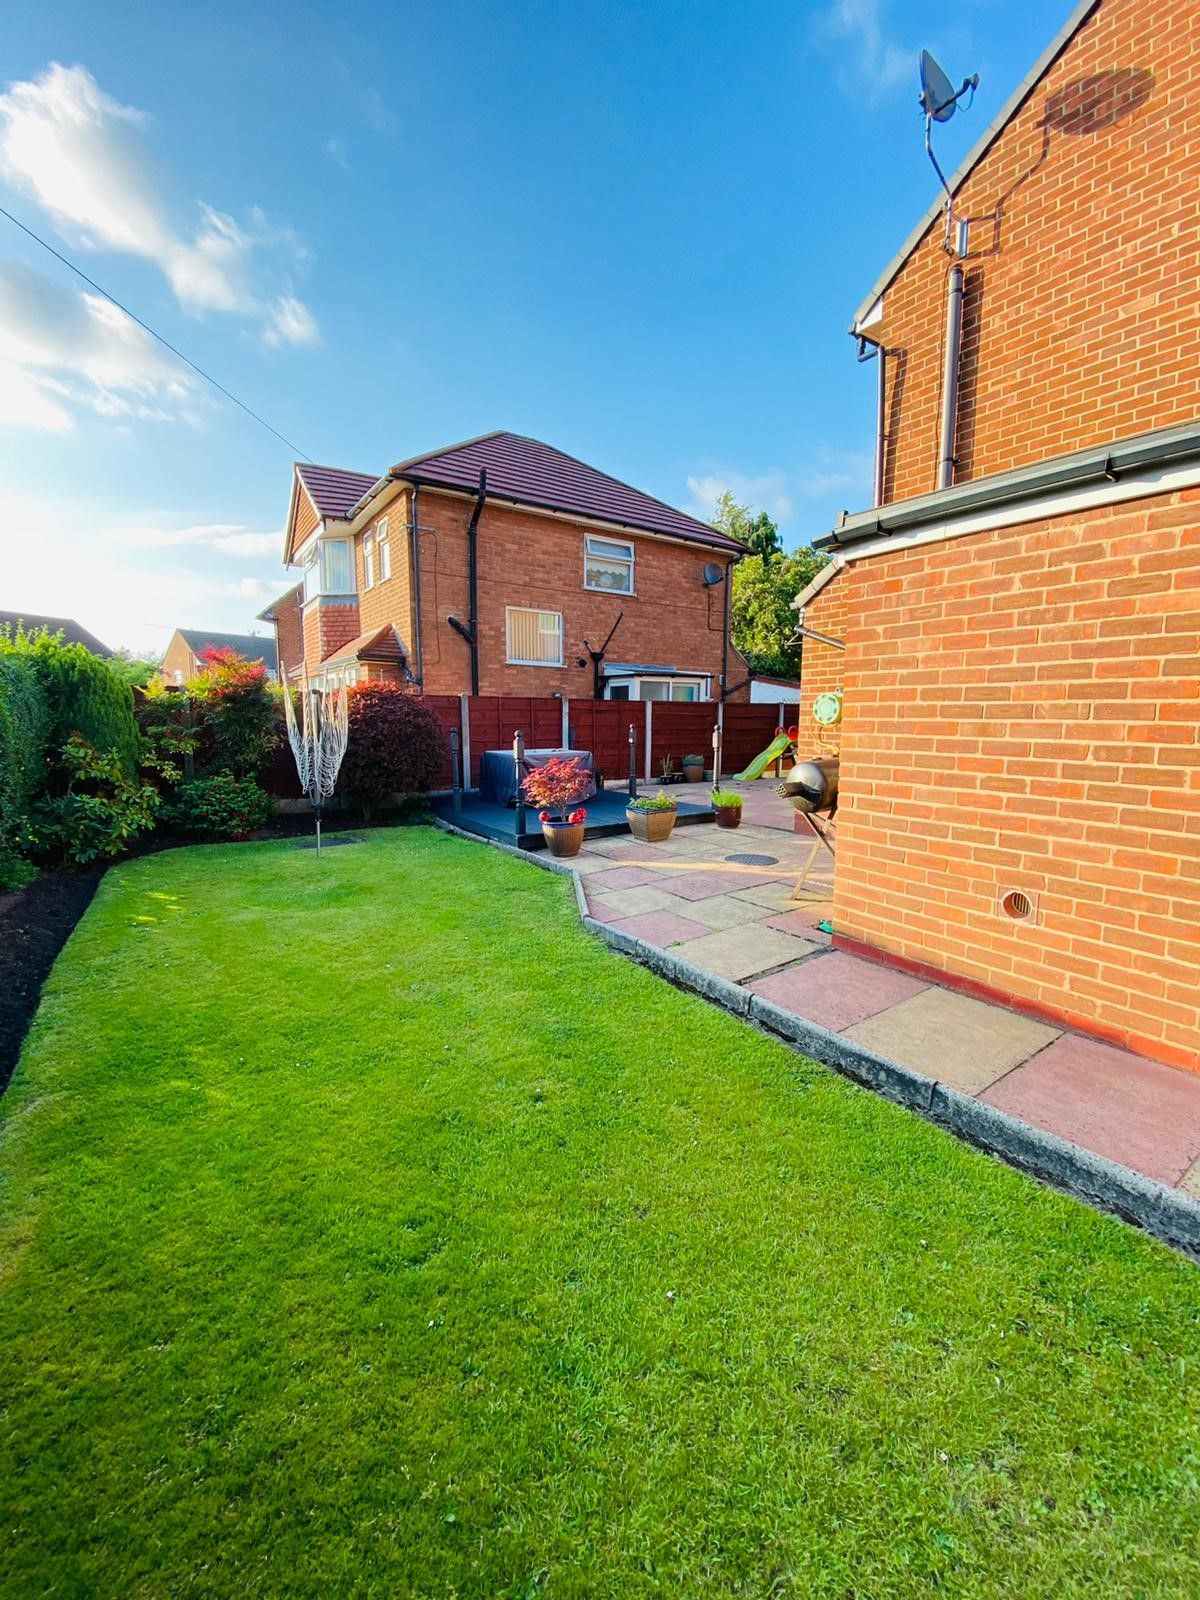 3 bedroom semi-detached house Under Offer in Manchester - Photograph 26.